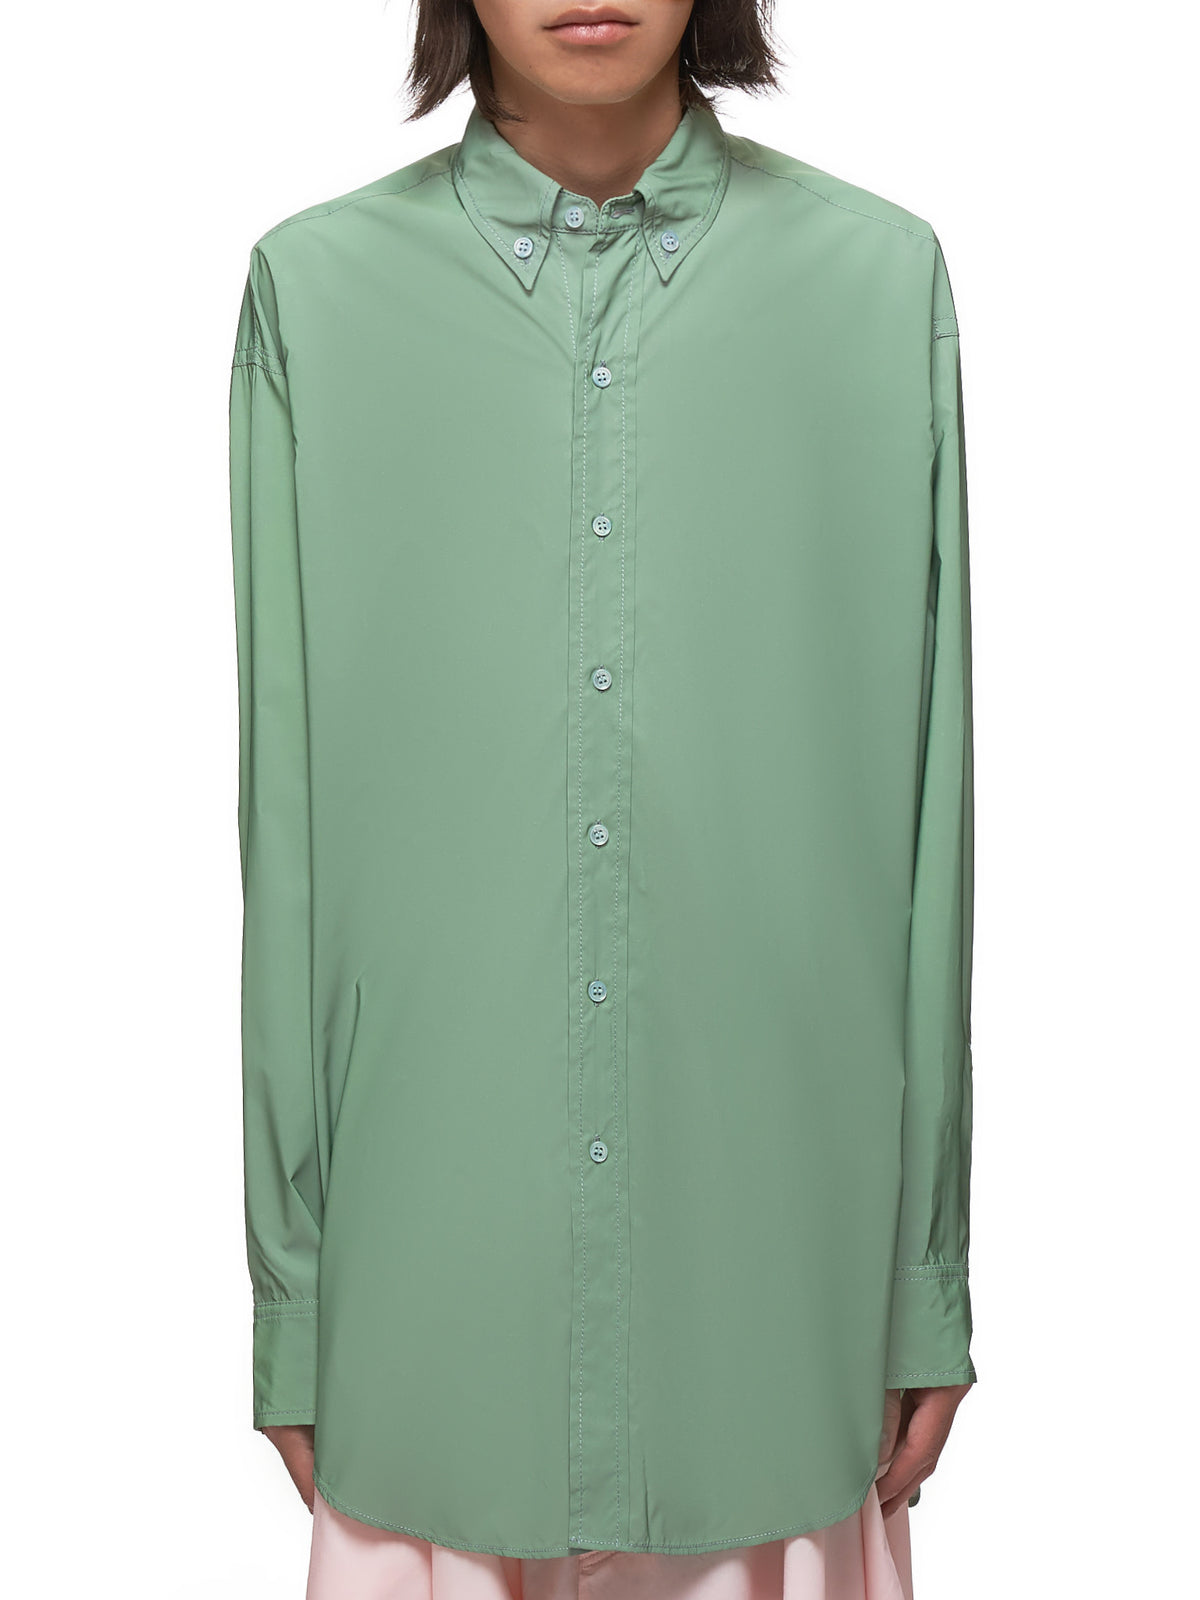 Anderson Reflective Shirt (M7PR320-GREEN)